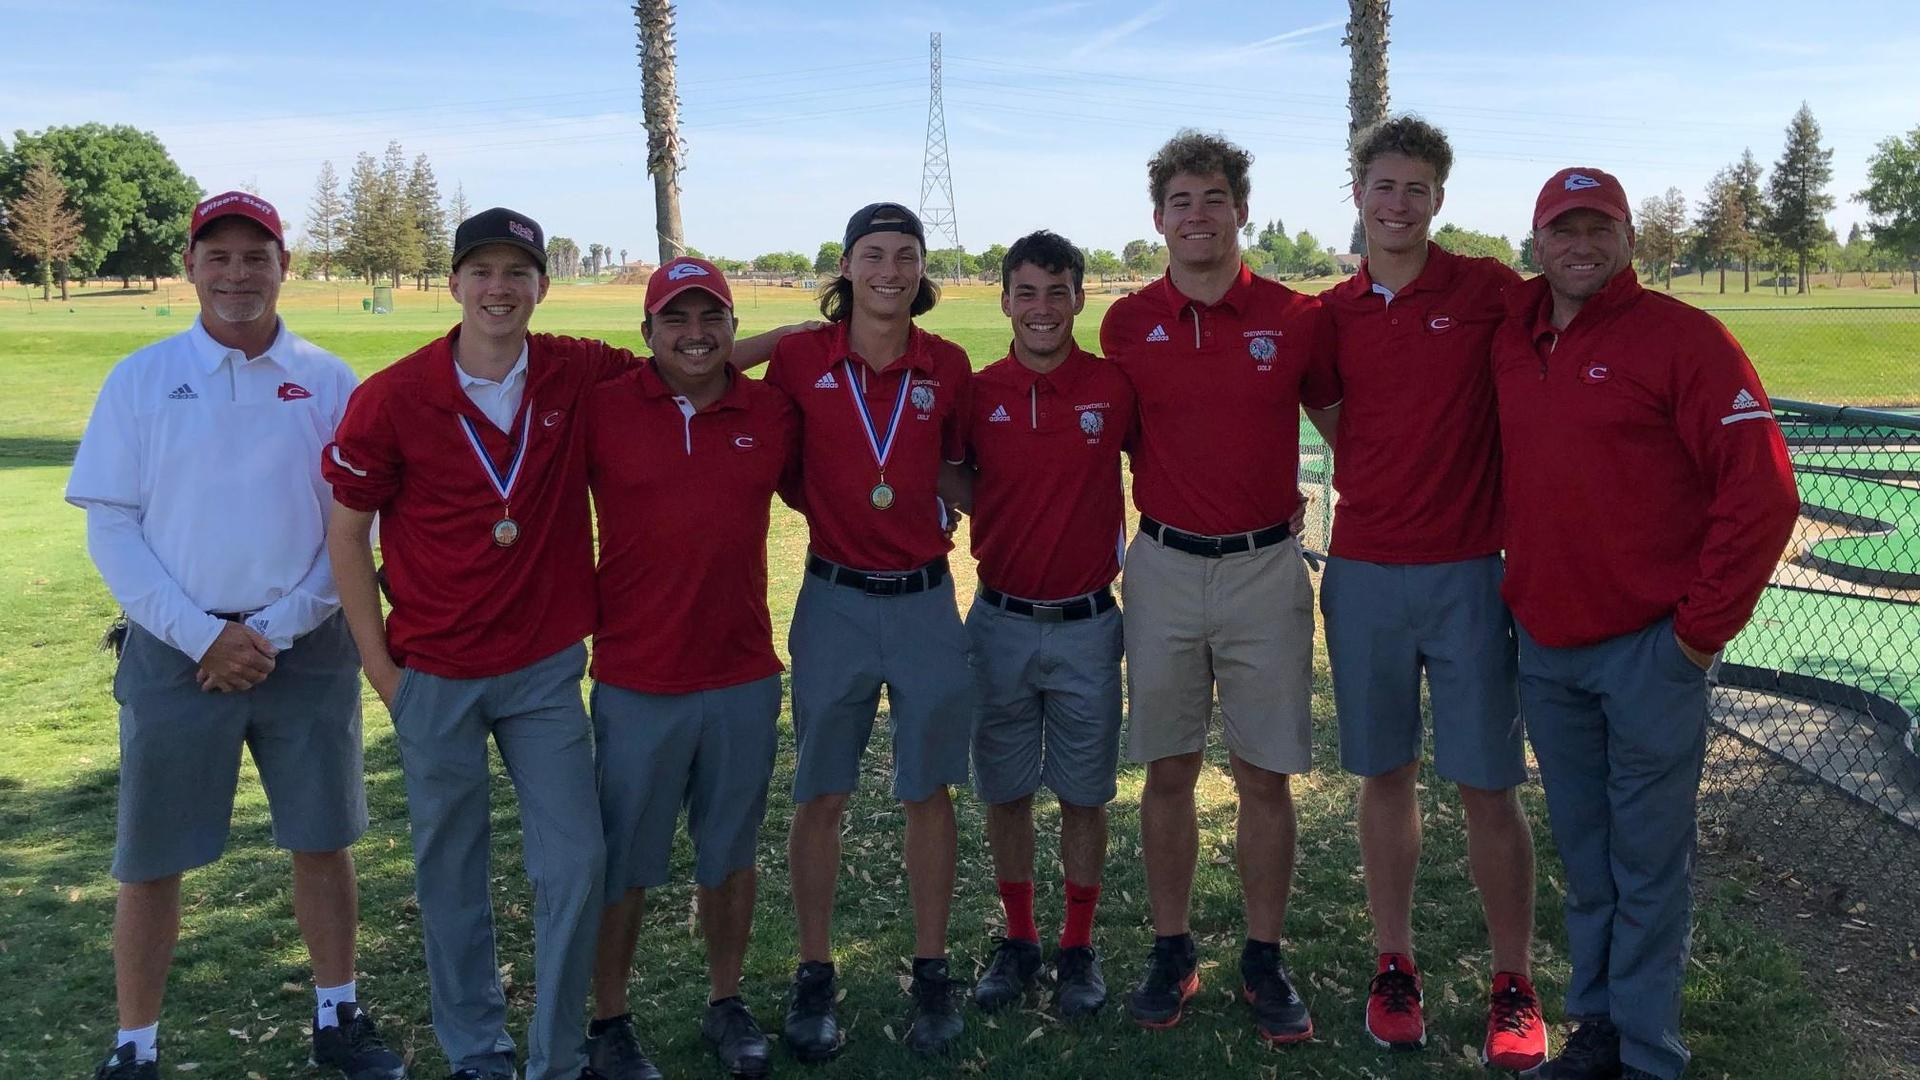 Golfers winning the league championship